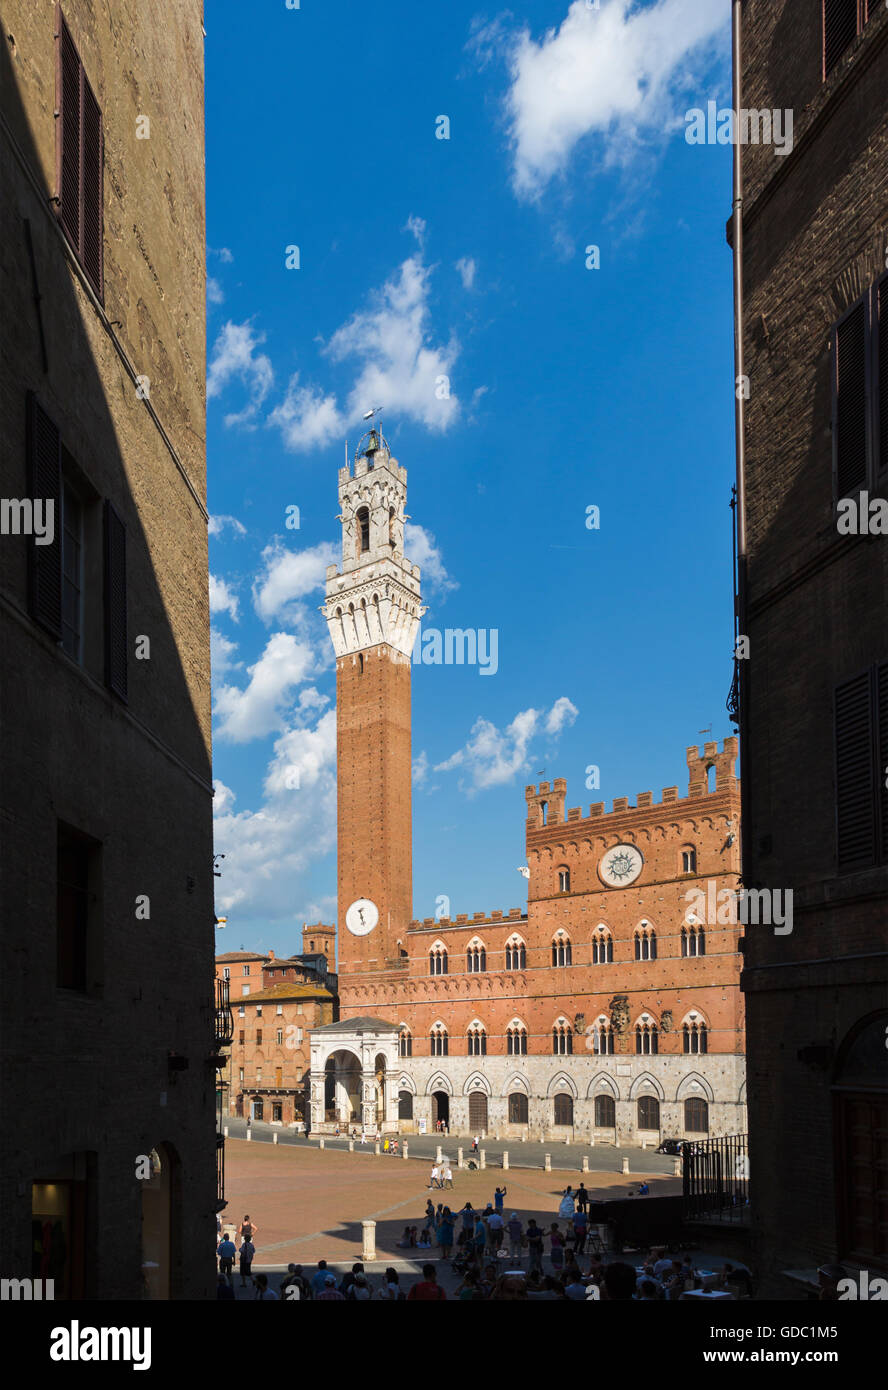 Siena, Siena Province, Tuscany, Italy.  Piazza del Campo and Torre del Mangia - Stock Image